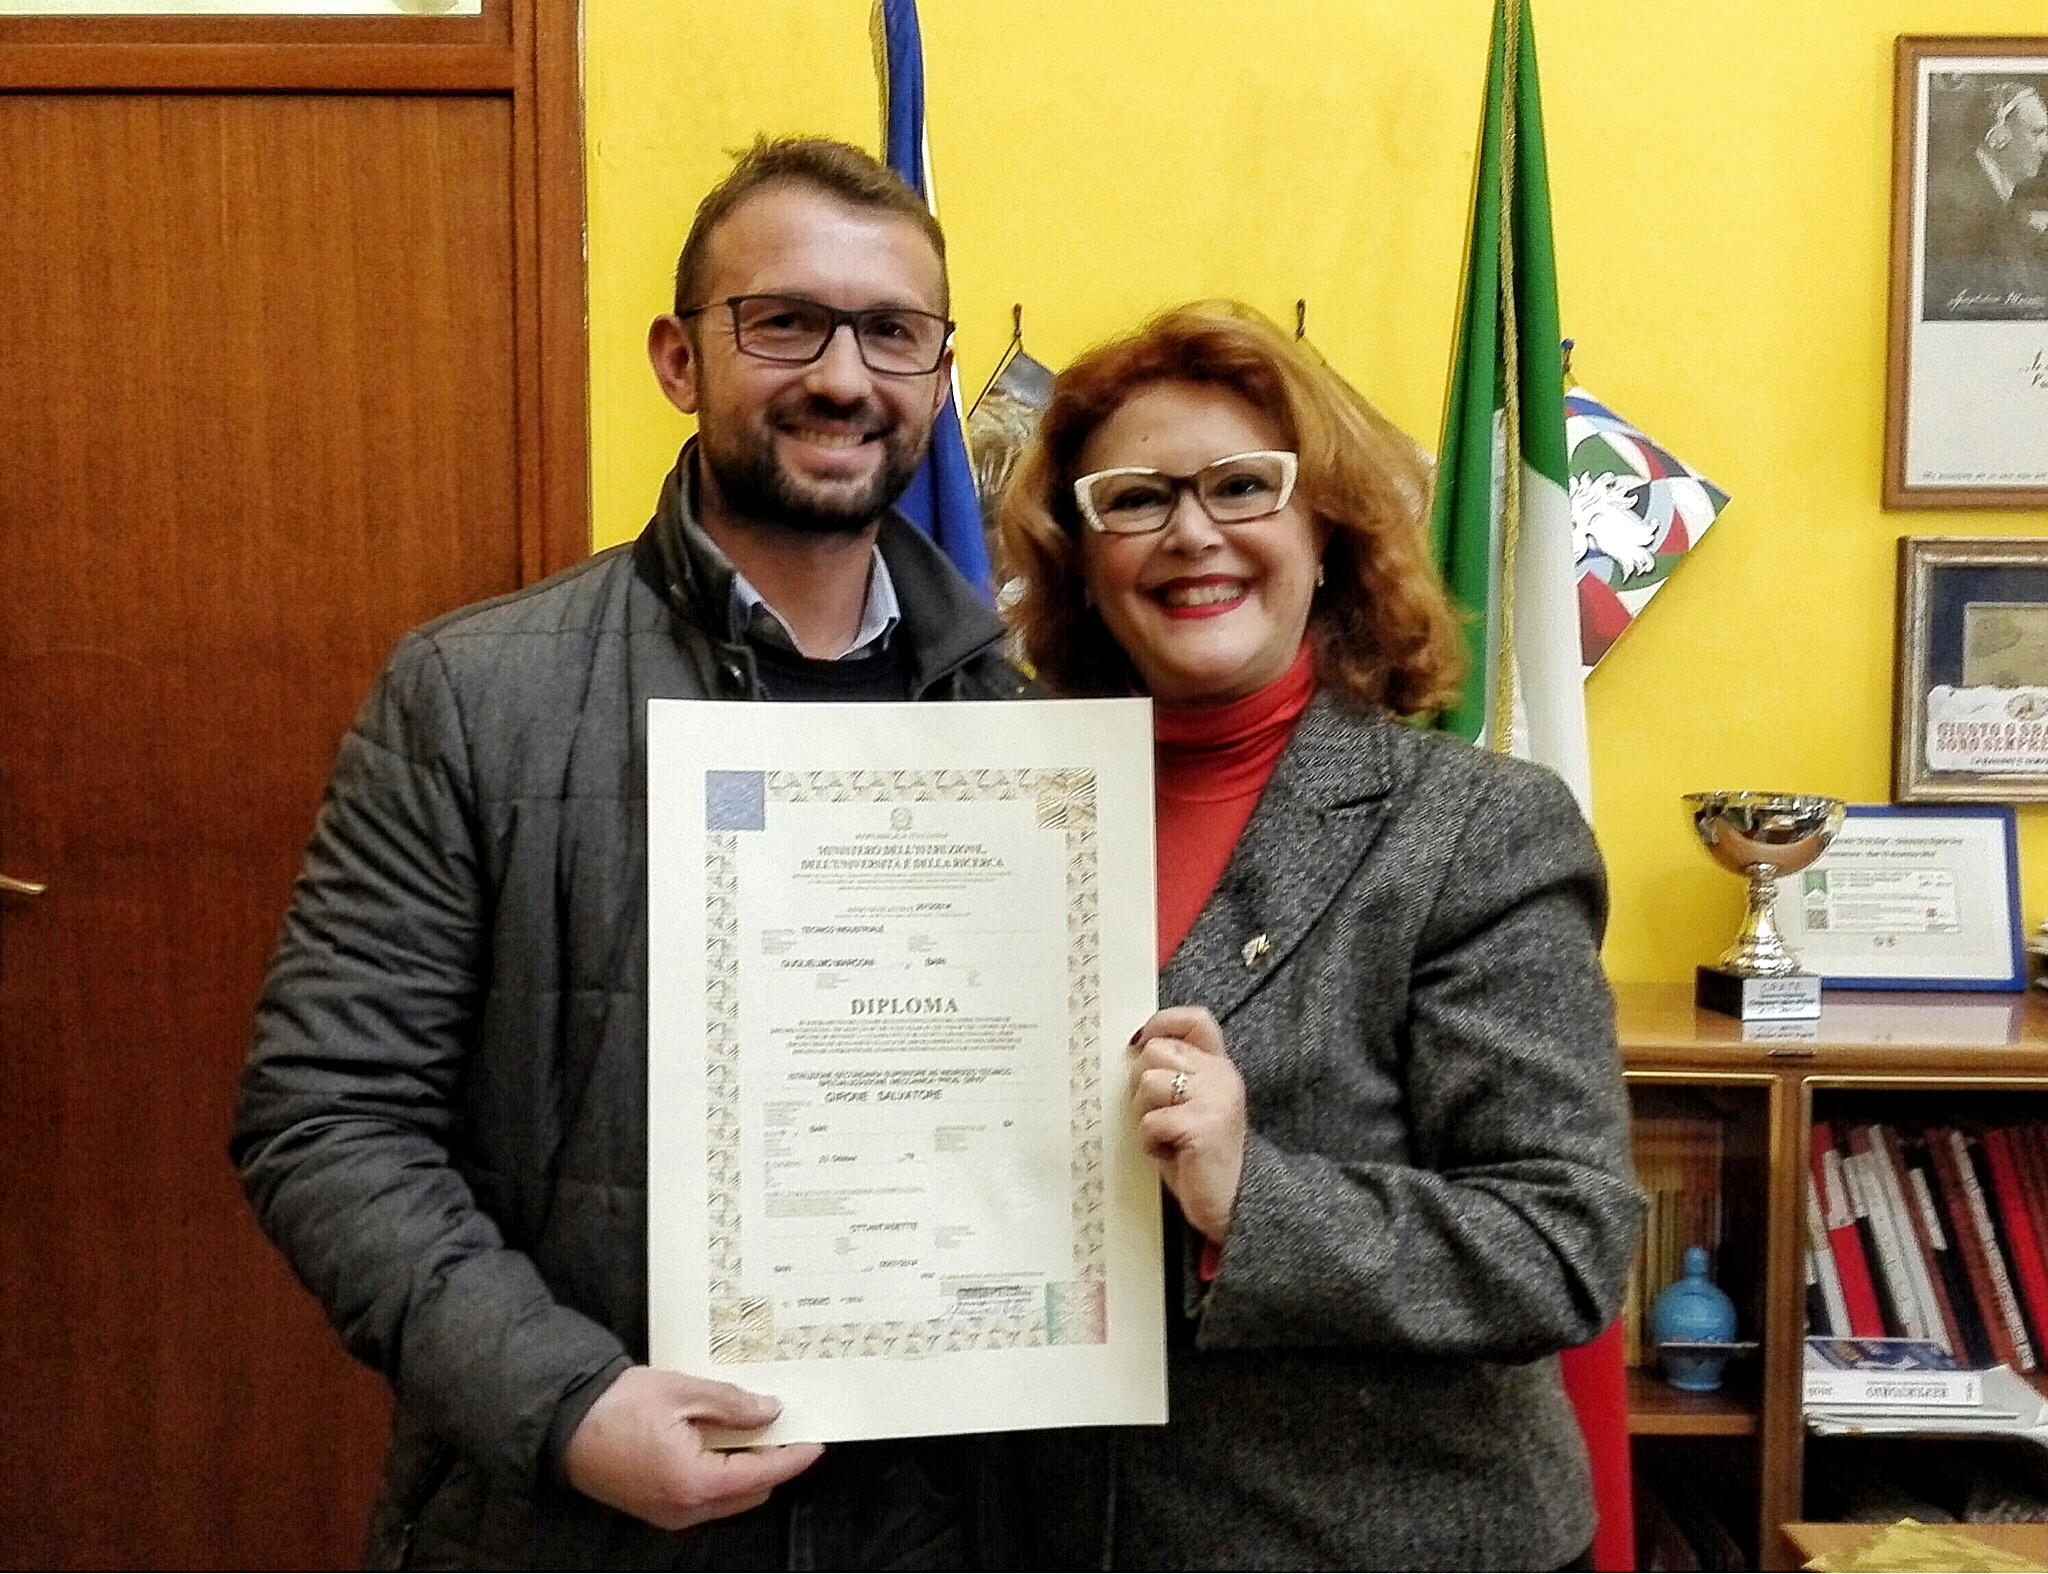 Diploma Salvatore Girone